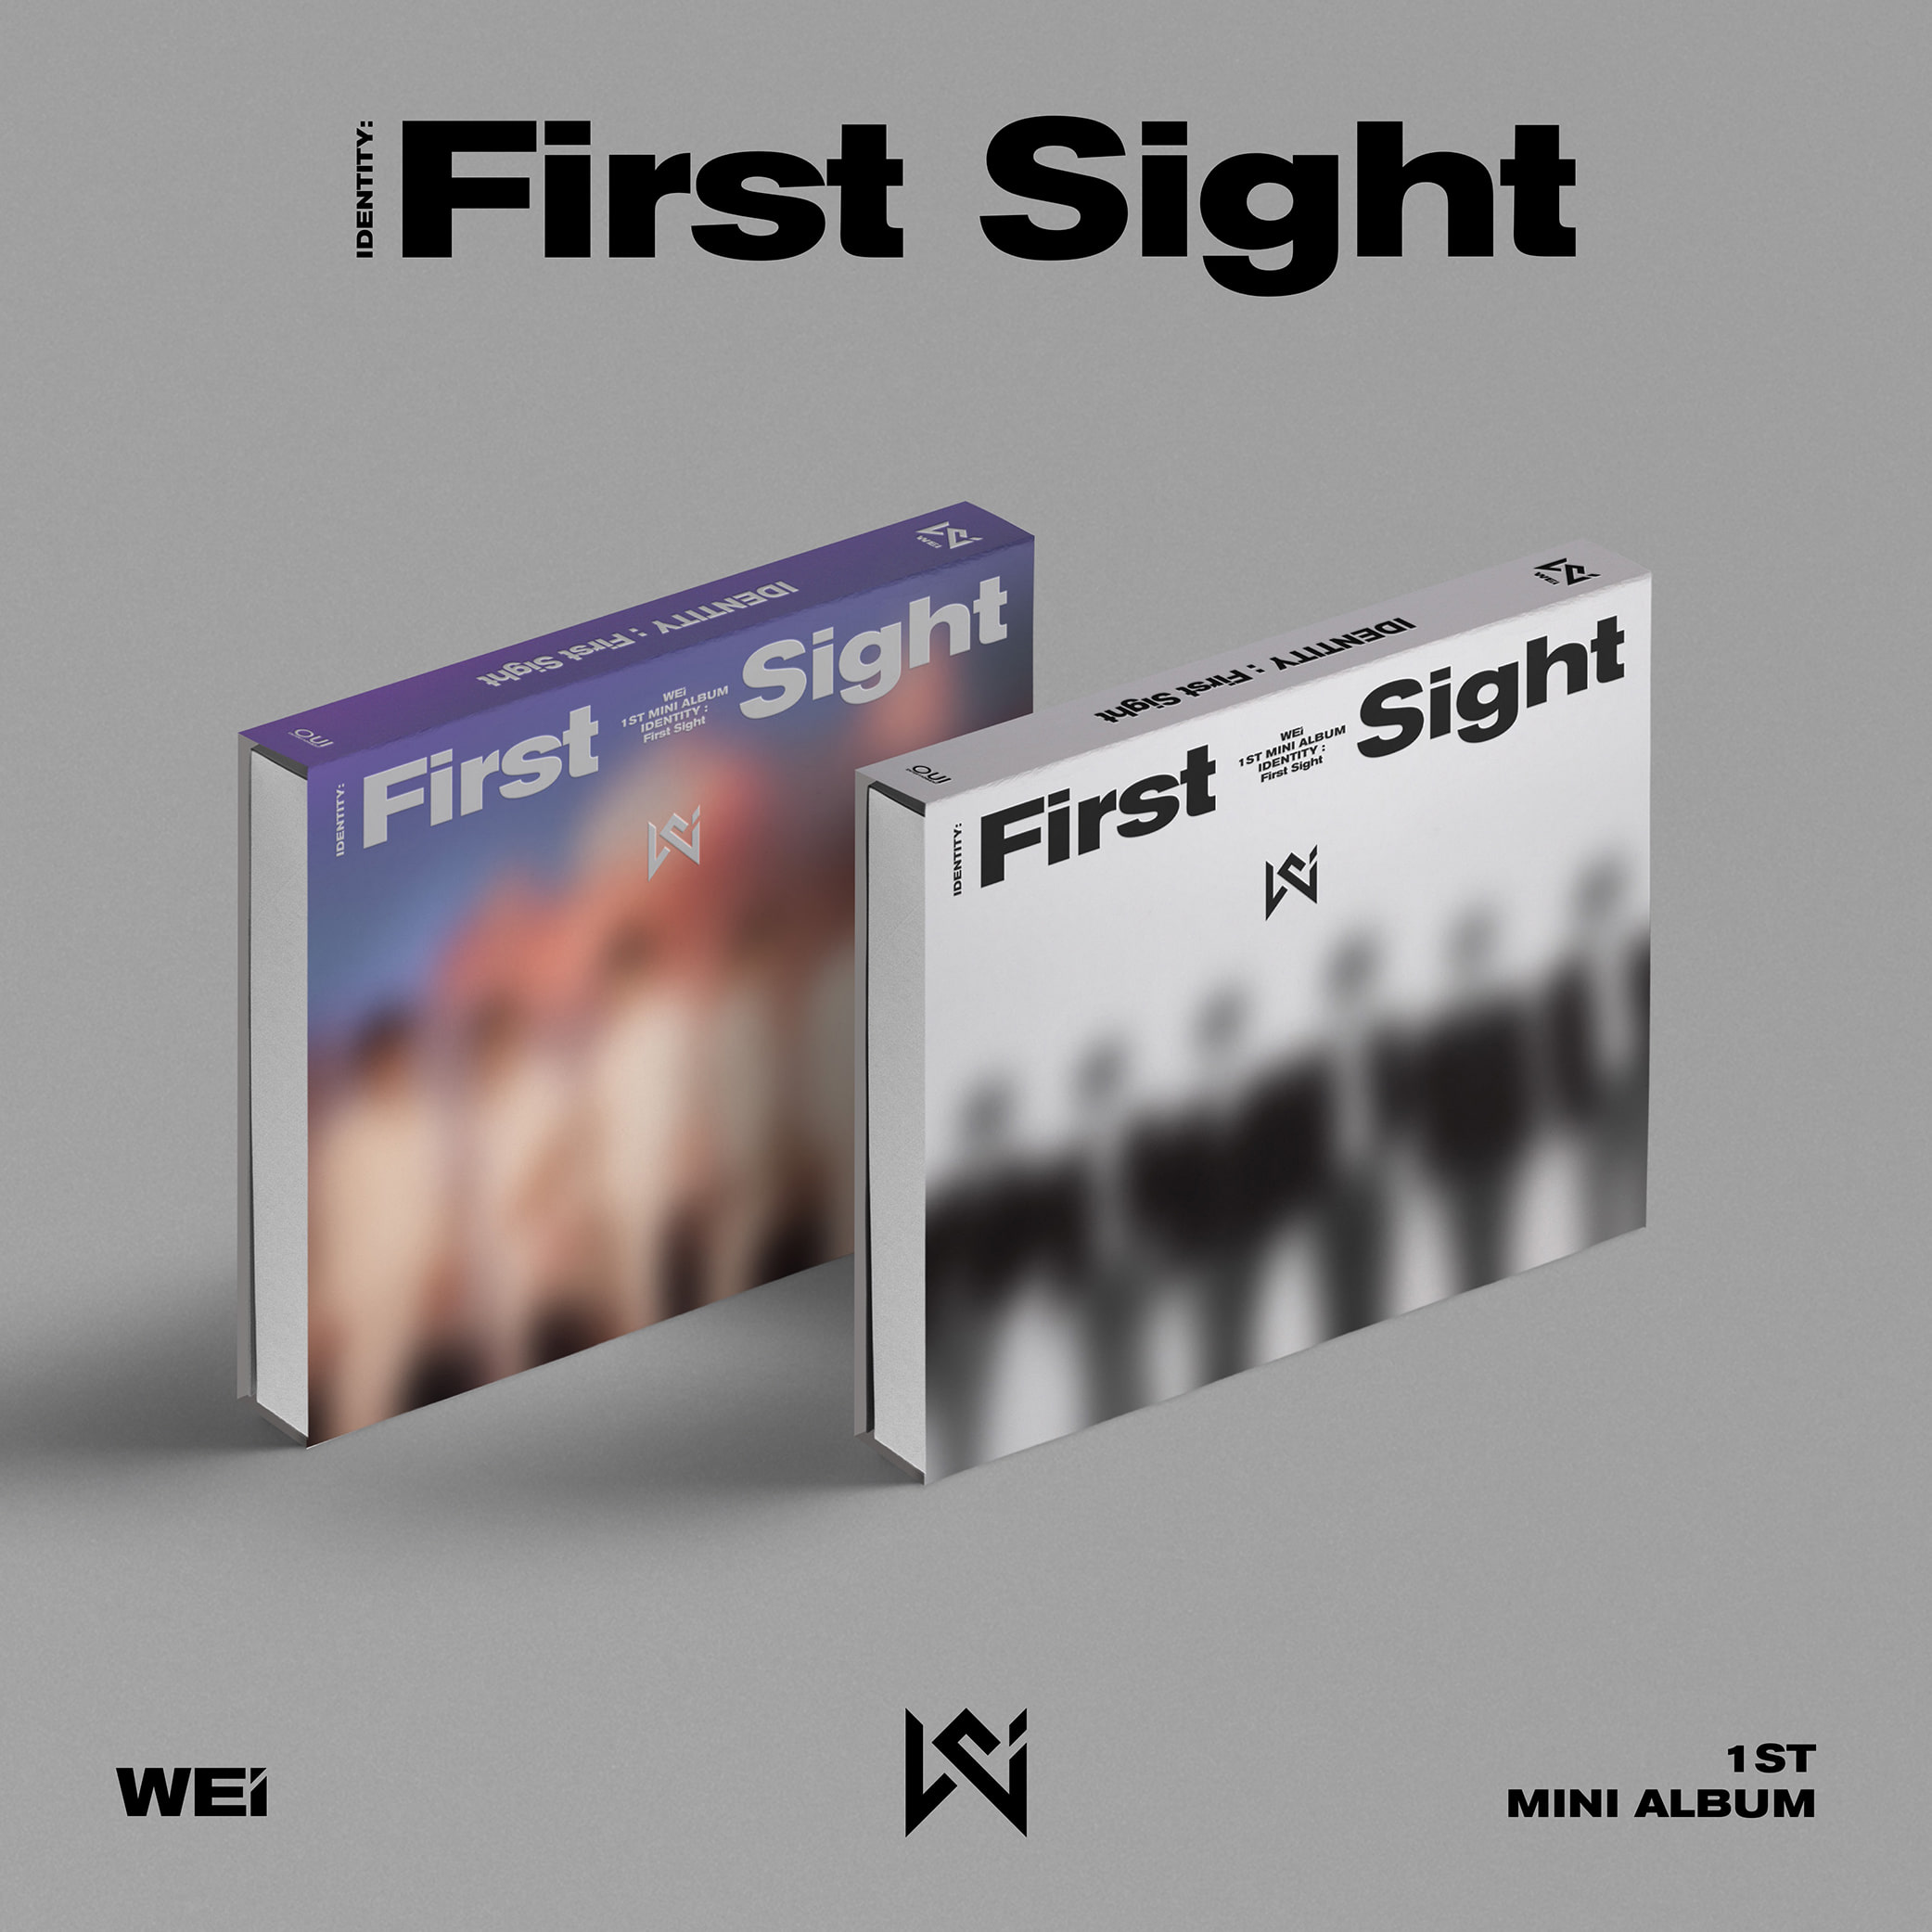 ★FANSIGN EVENT★ WEi - Mini Album Vol. 1 [IDENTITY : First Sight]케이팝스토어(kpop store)